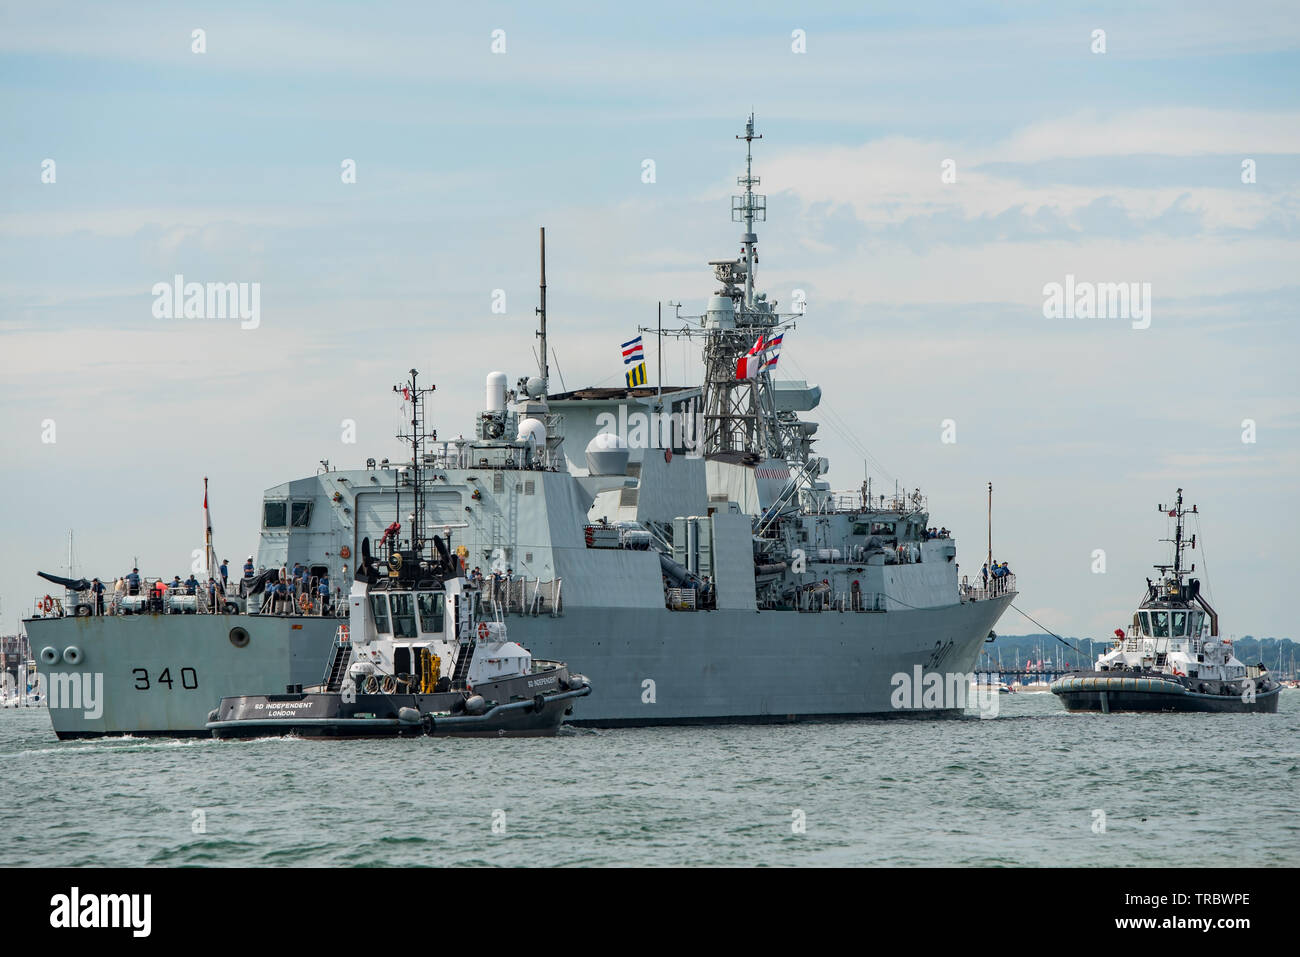 The Royal Canadian Navy frigate HMCS St John's arrived at